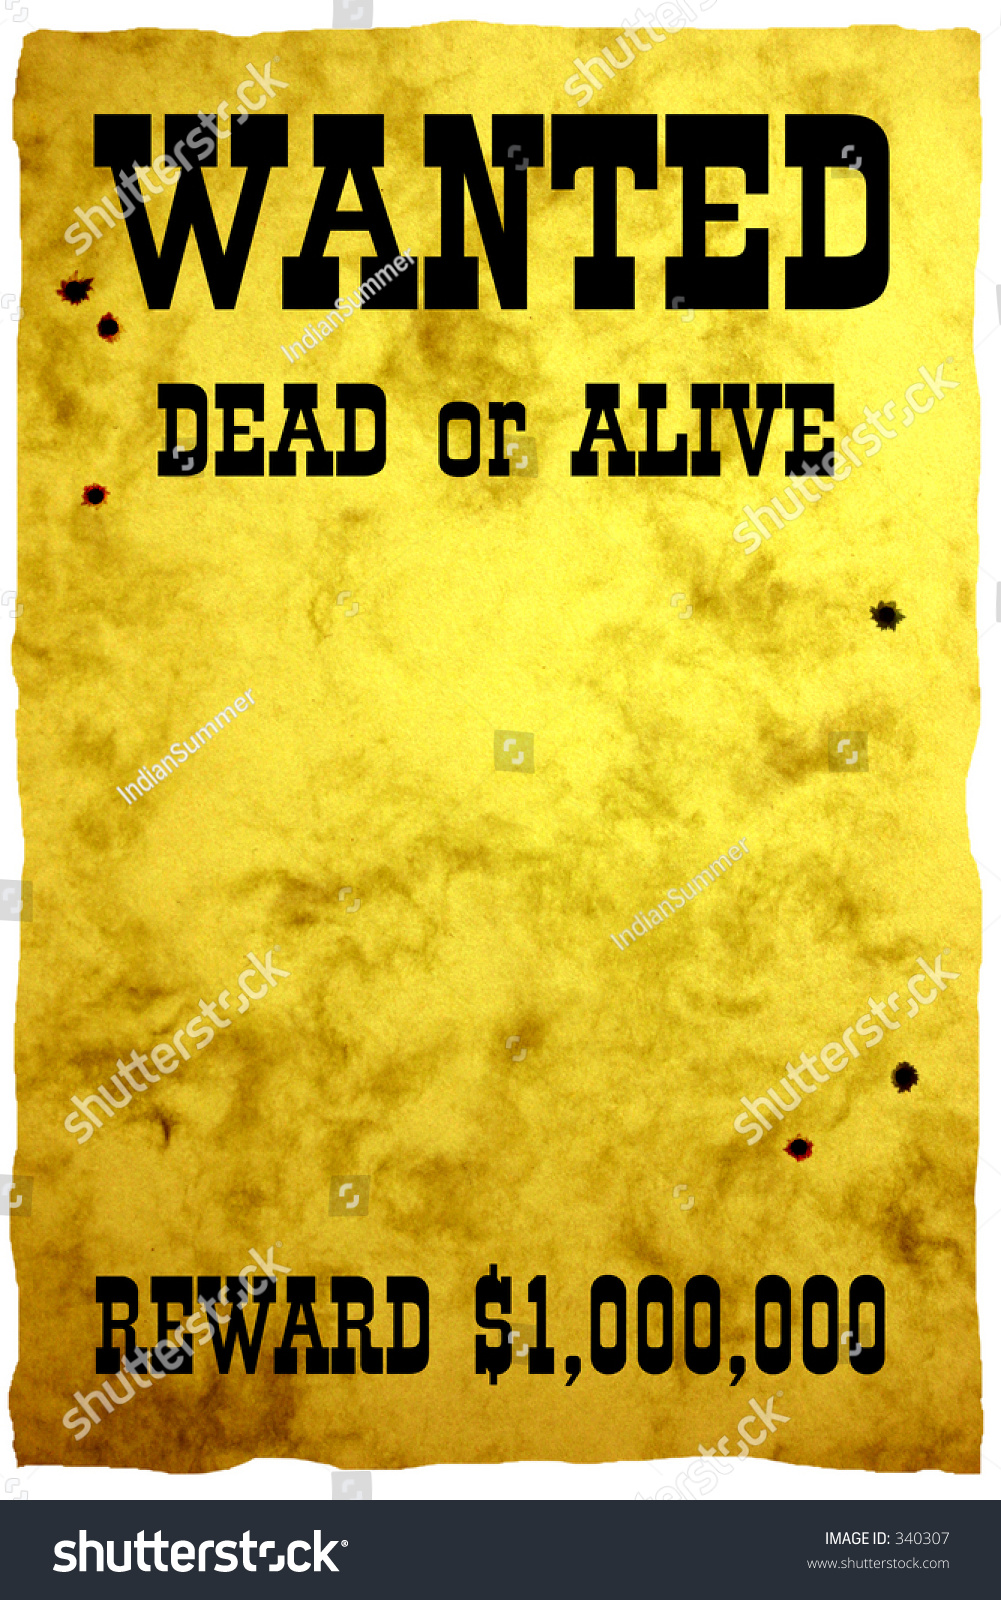 best free wanted poster template download ideas.resume format for, Powerpoint templates